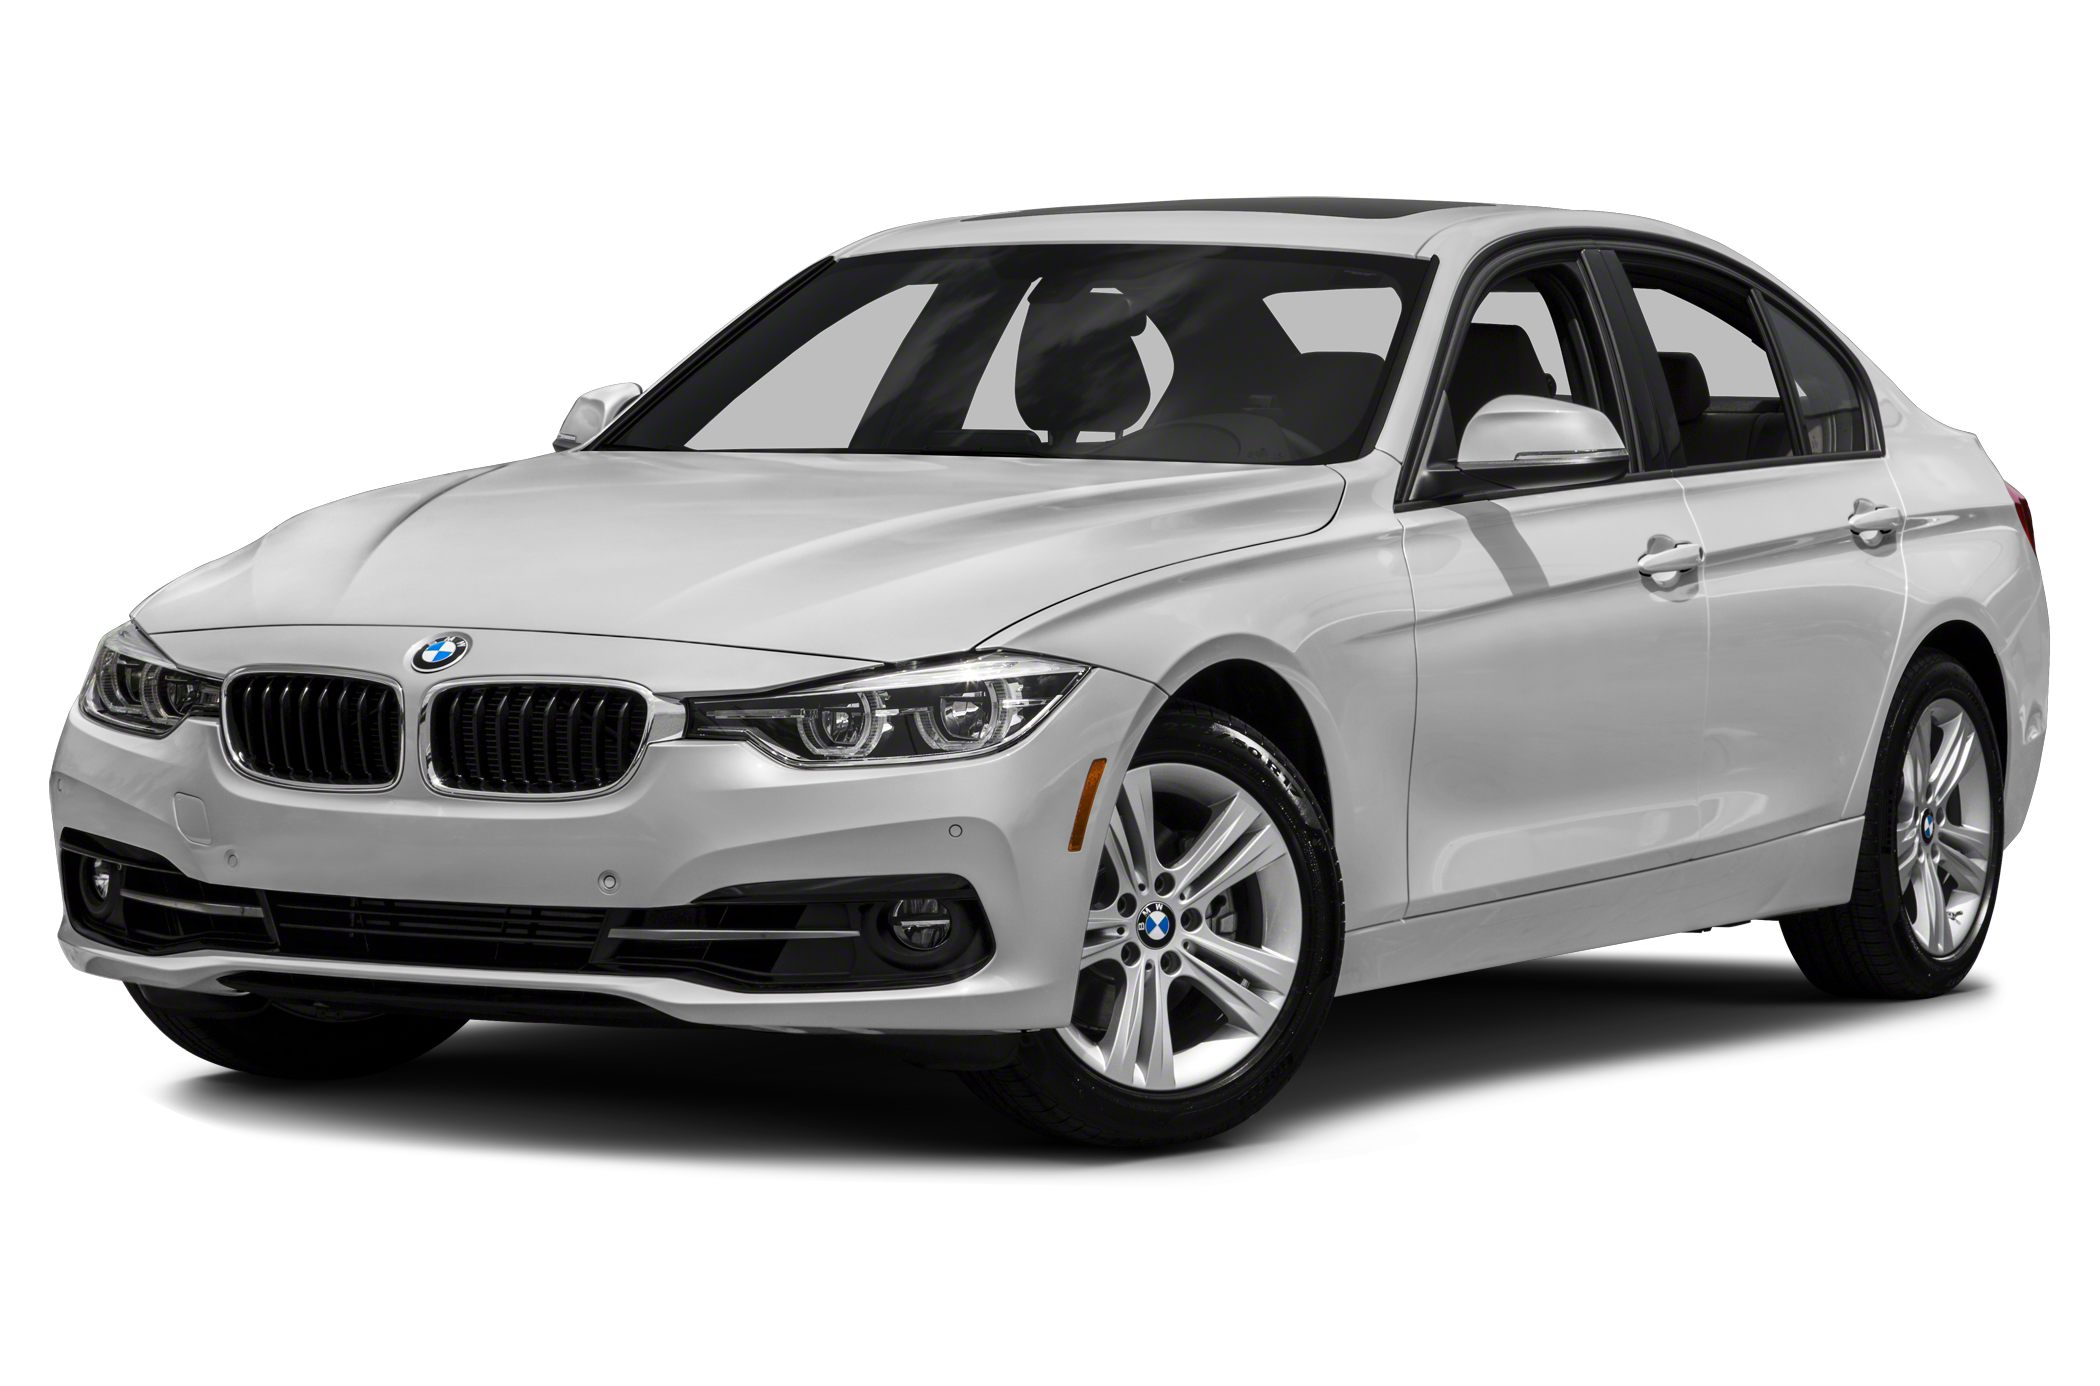 BMW I Dr Rearwheel Drive Sedan Pricing And Options - Bmw 328i options